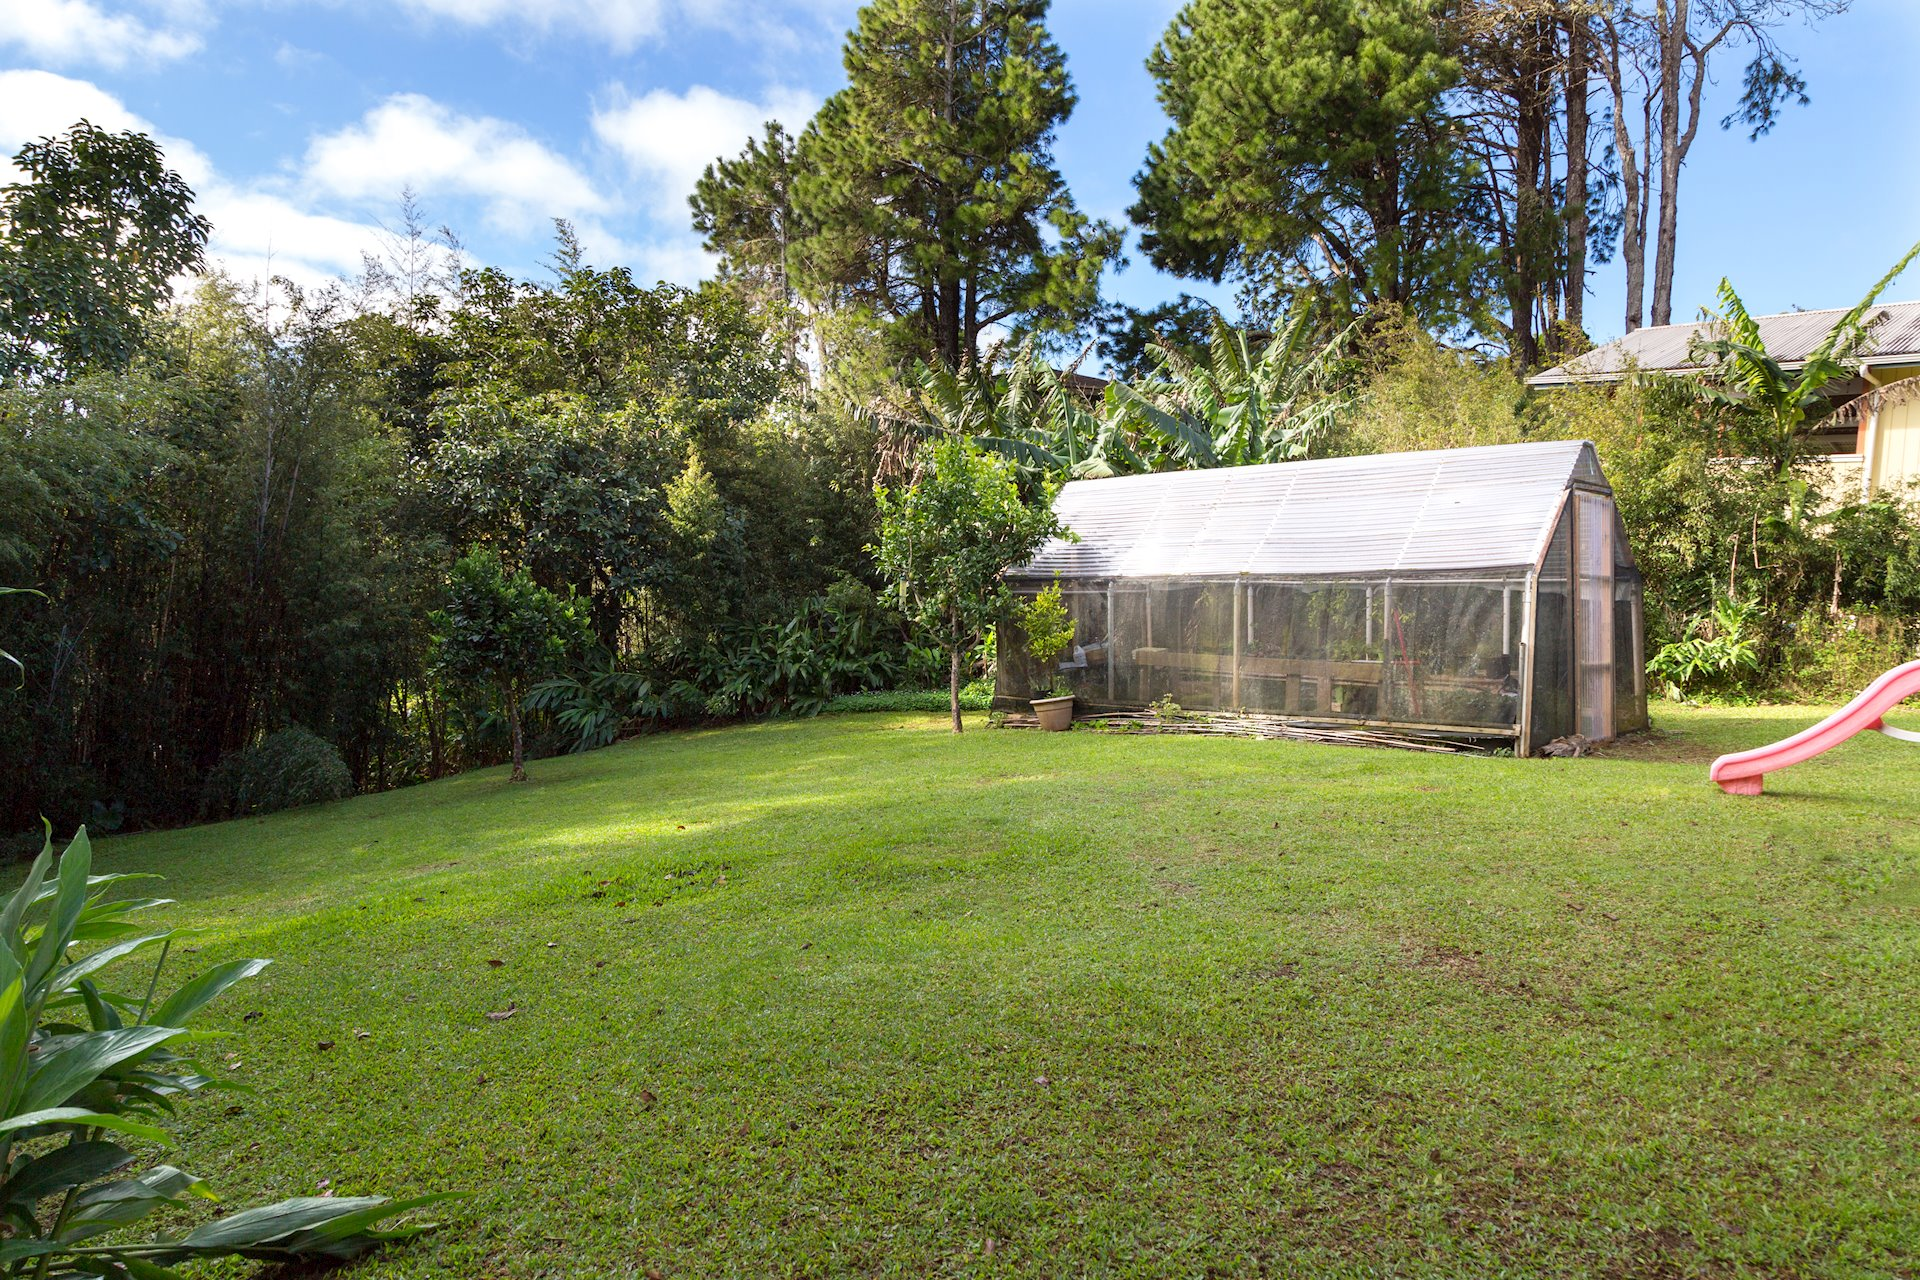 Large grassy yard with greenhouse